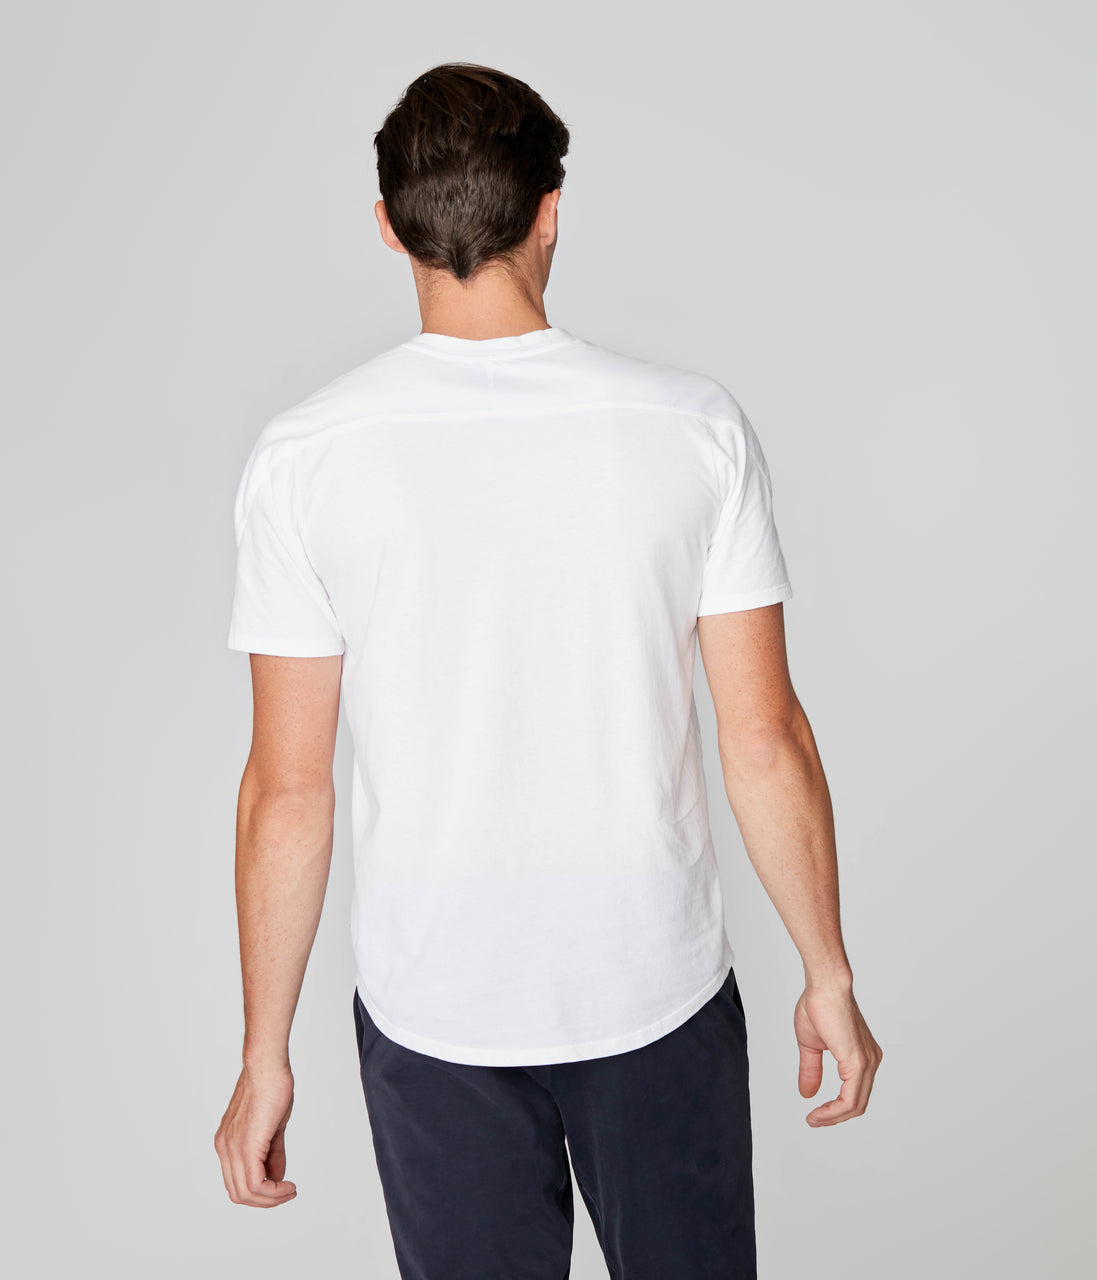 Premium Cotton Jersey Notch Neck Crew - White - Good Man Brand - Premium Cotton Jersey Notch Neck Crew - White